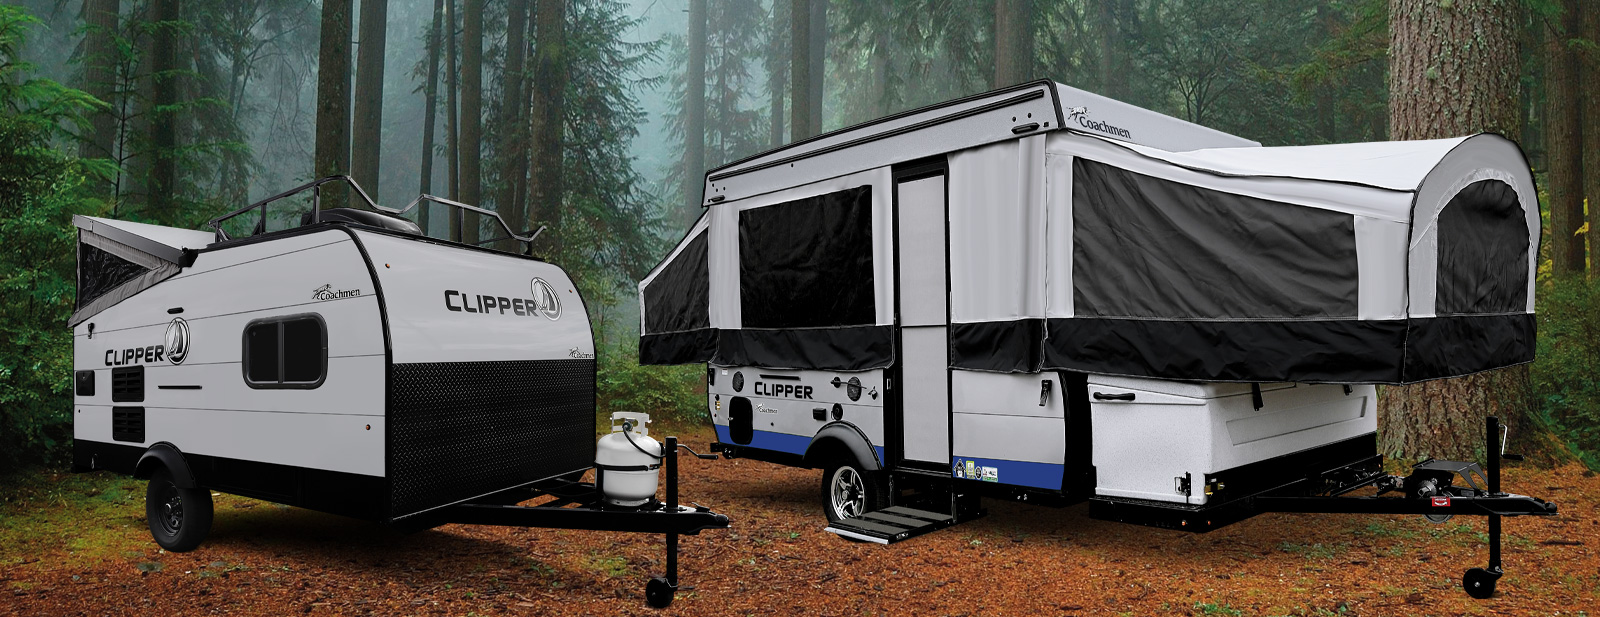 Clipper Pop Up Campers by Coachmen RV